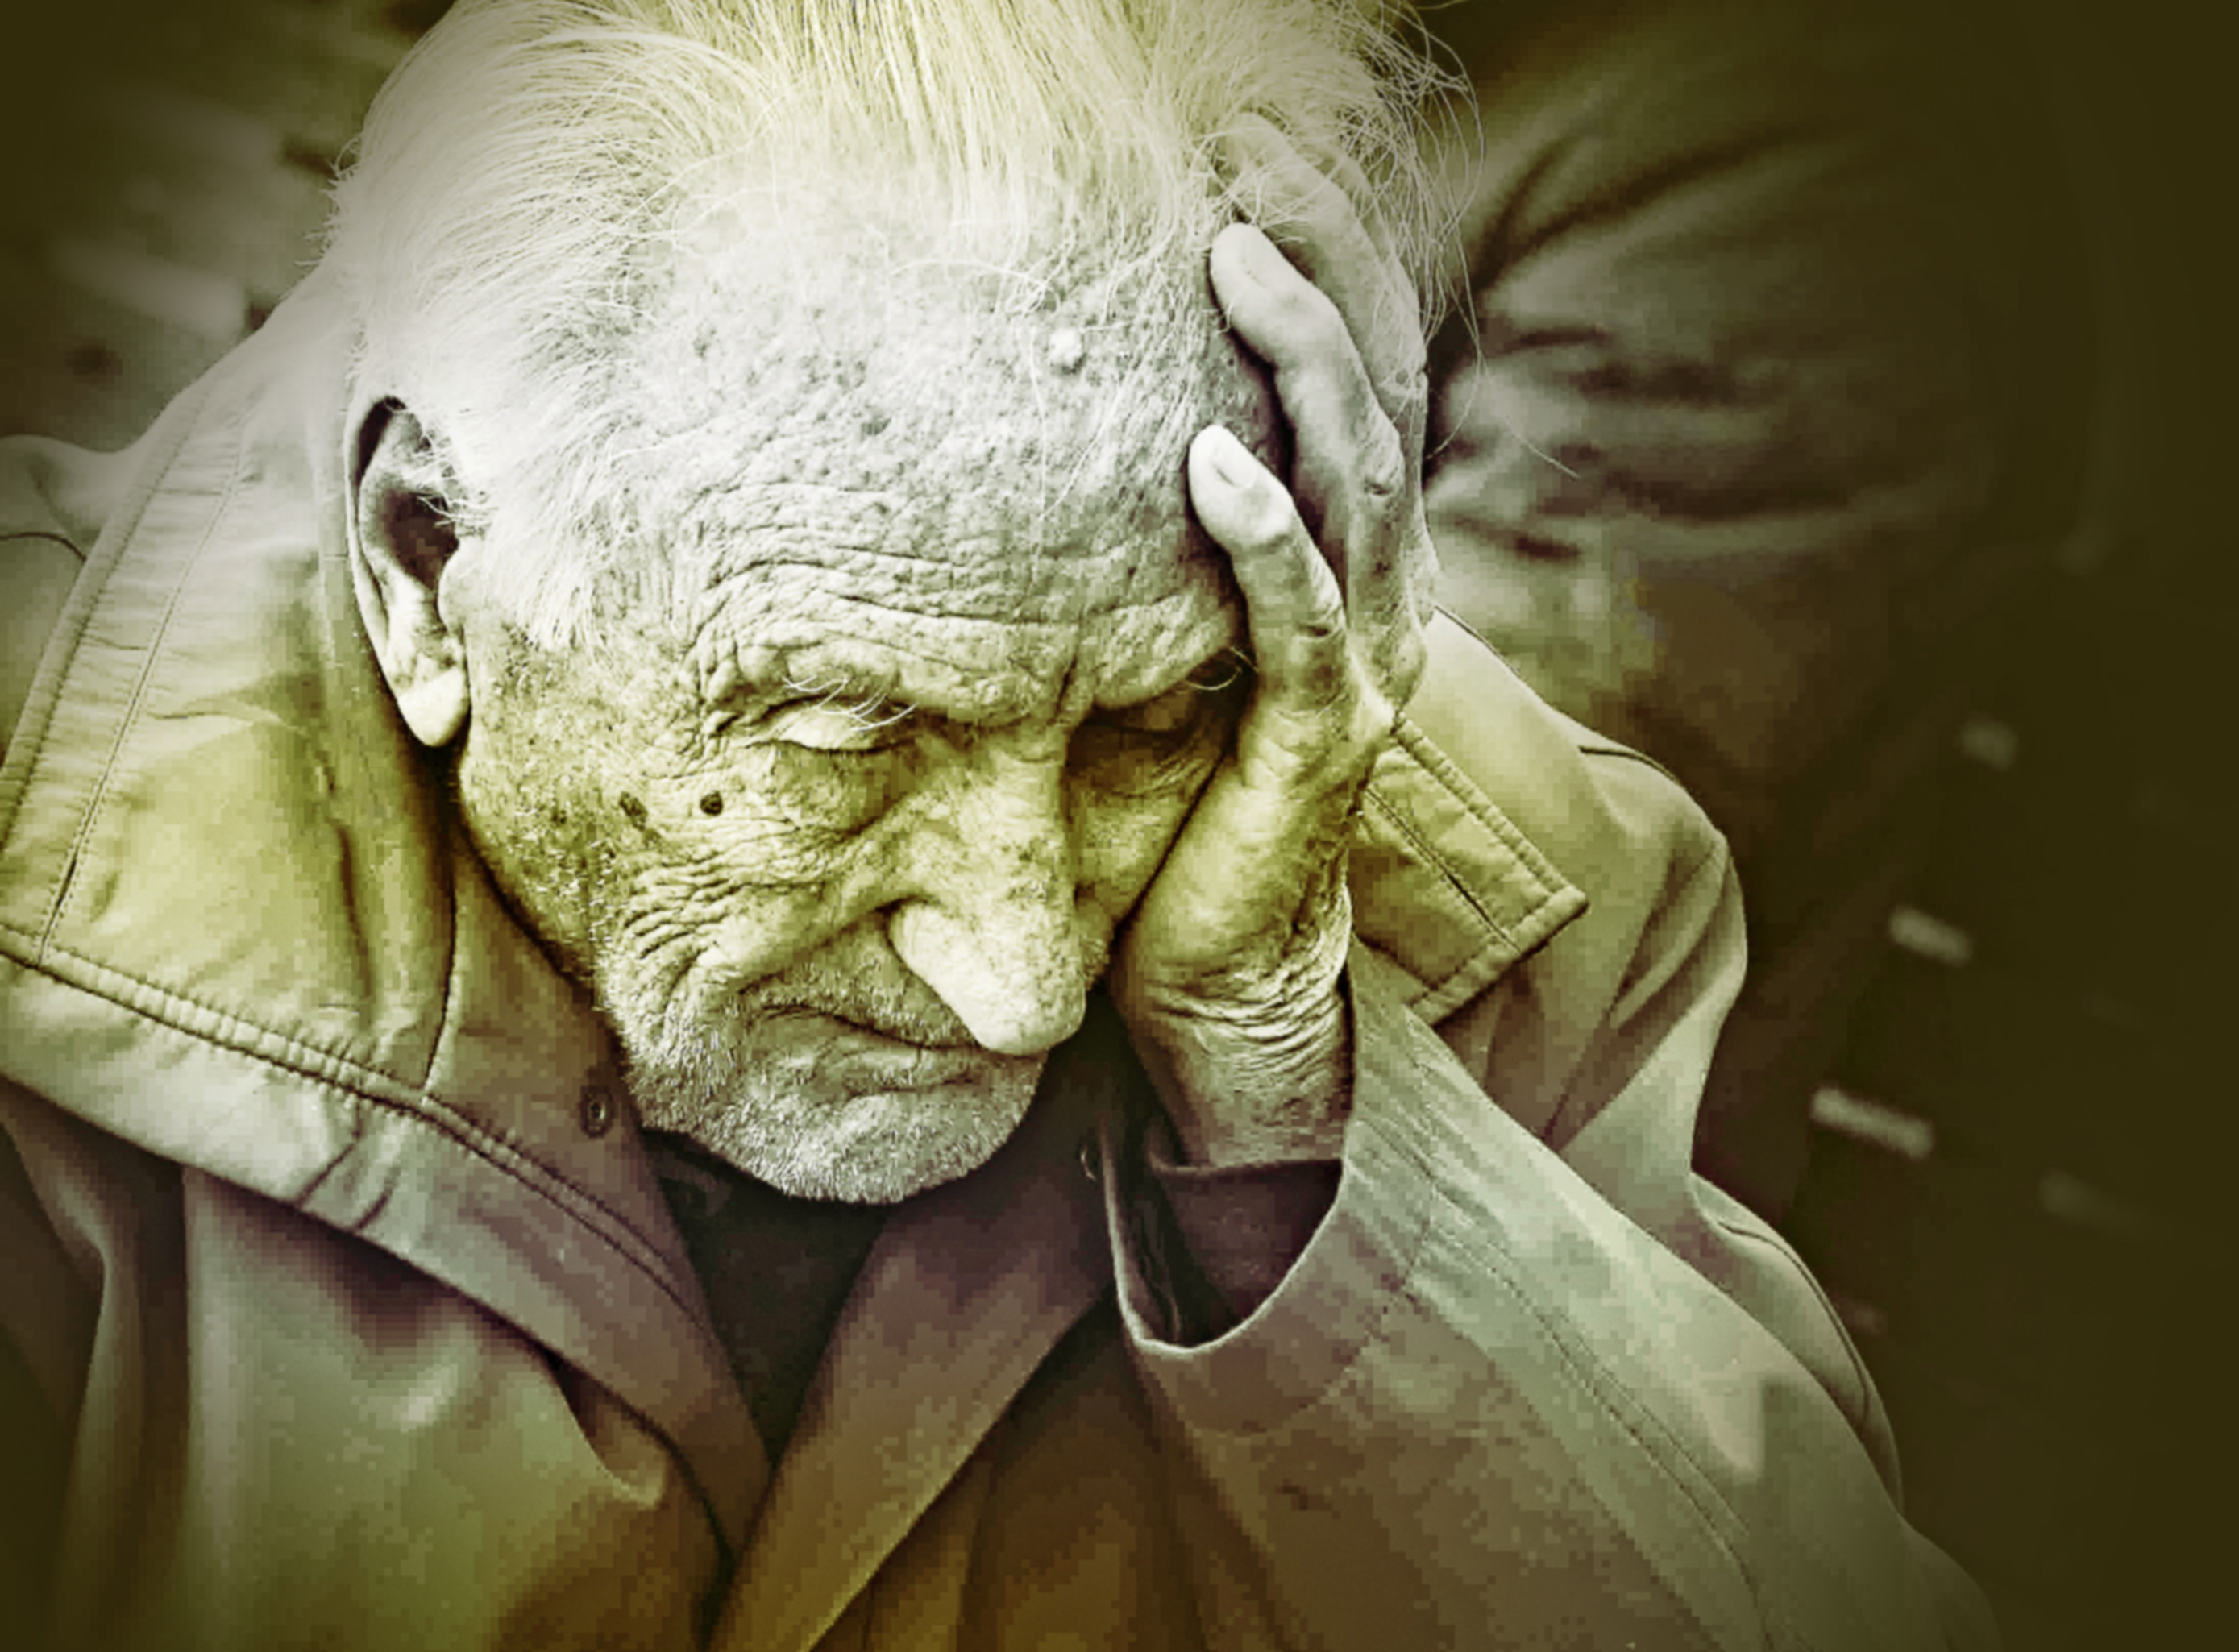 Emotional colorized portrait of elderly man worrying photo